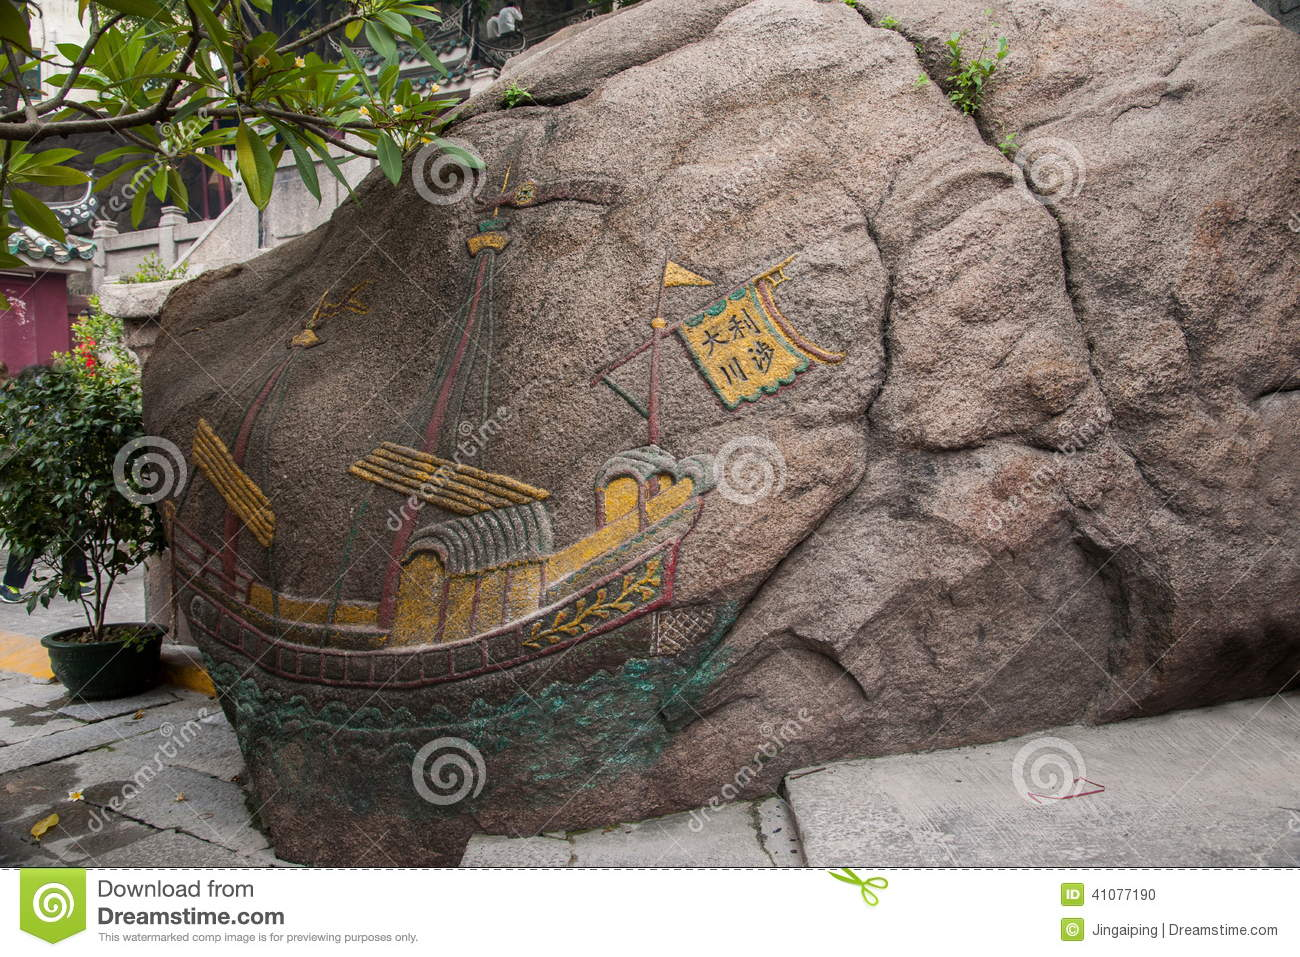 Macau famous historical building Matsu, the history and culture of stone cliff